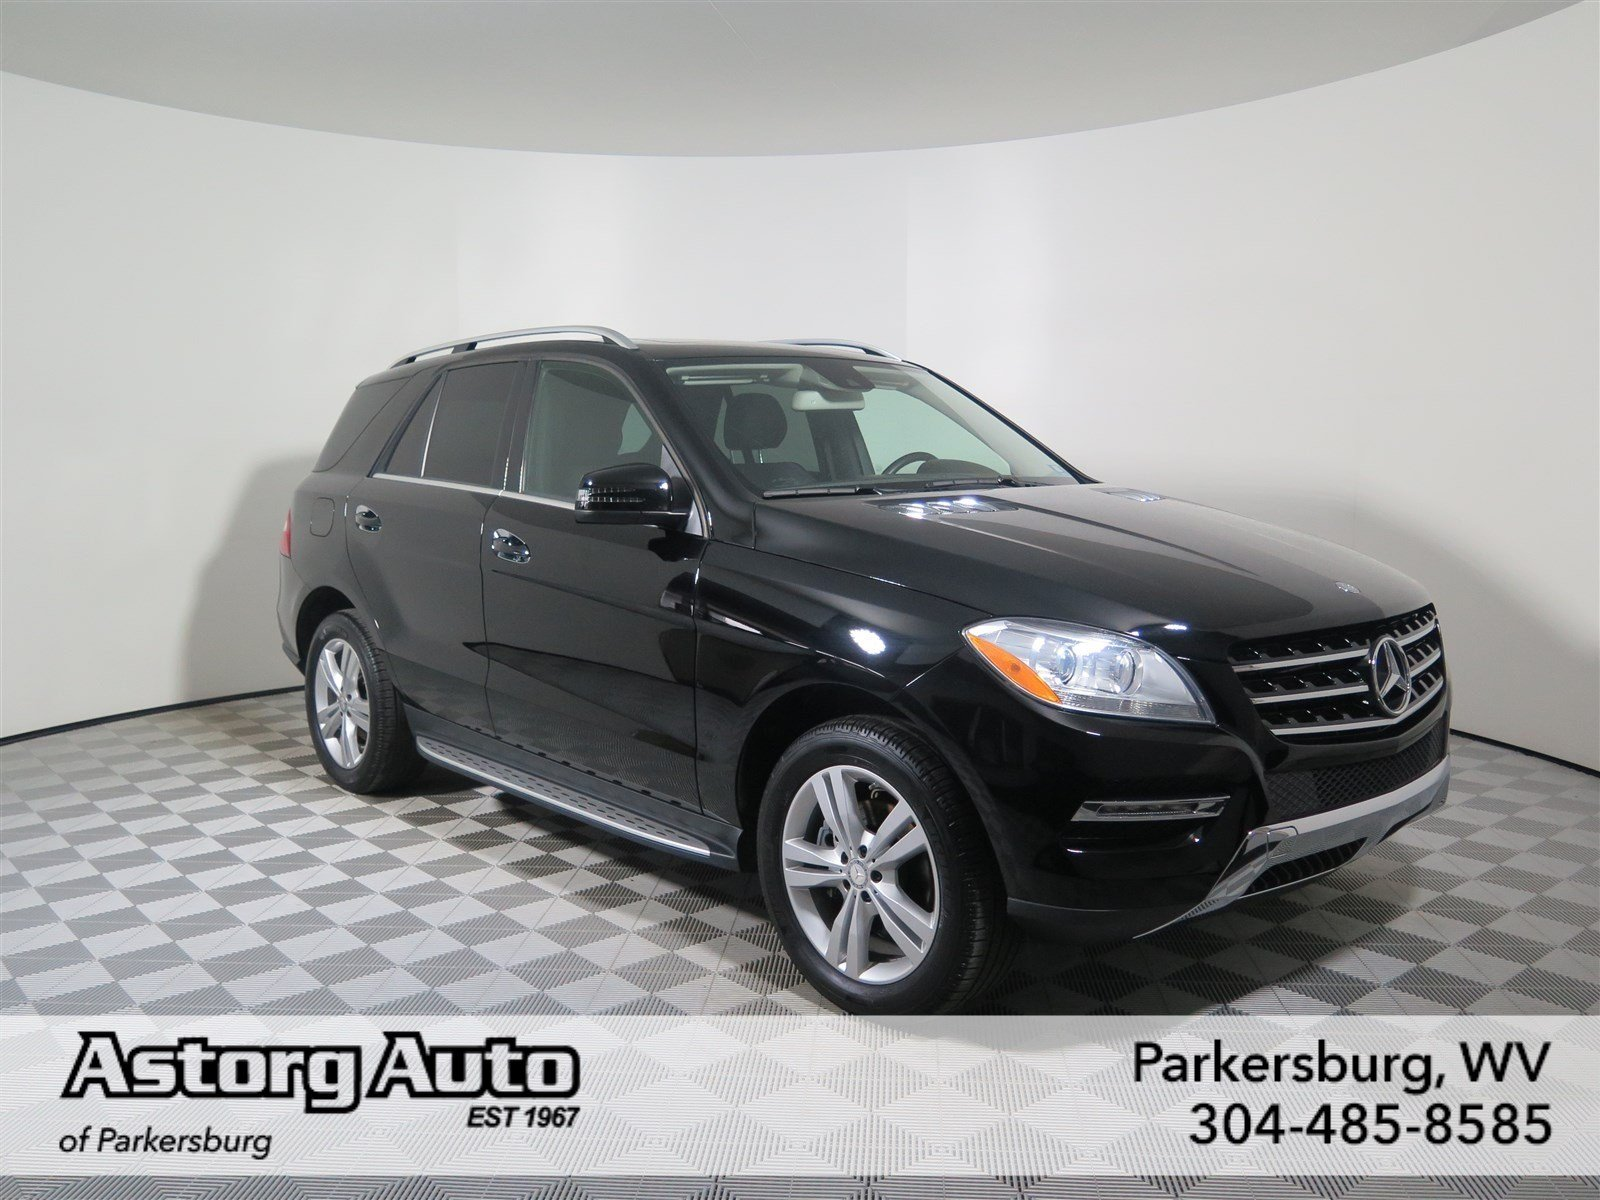 Certified pre owned 2014 mercedes benz m class ml 350 suv for Certified mercedes benz